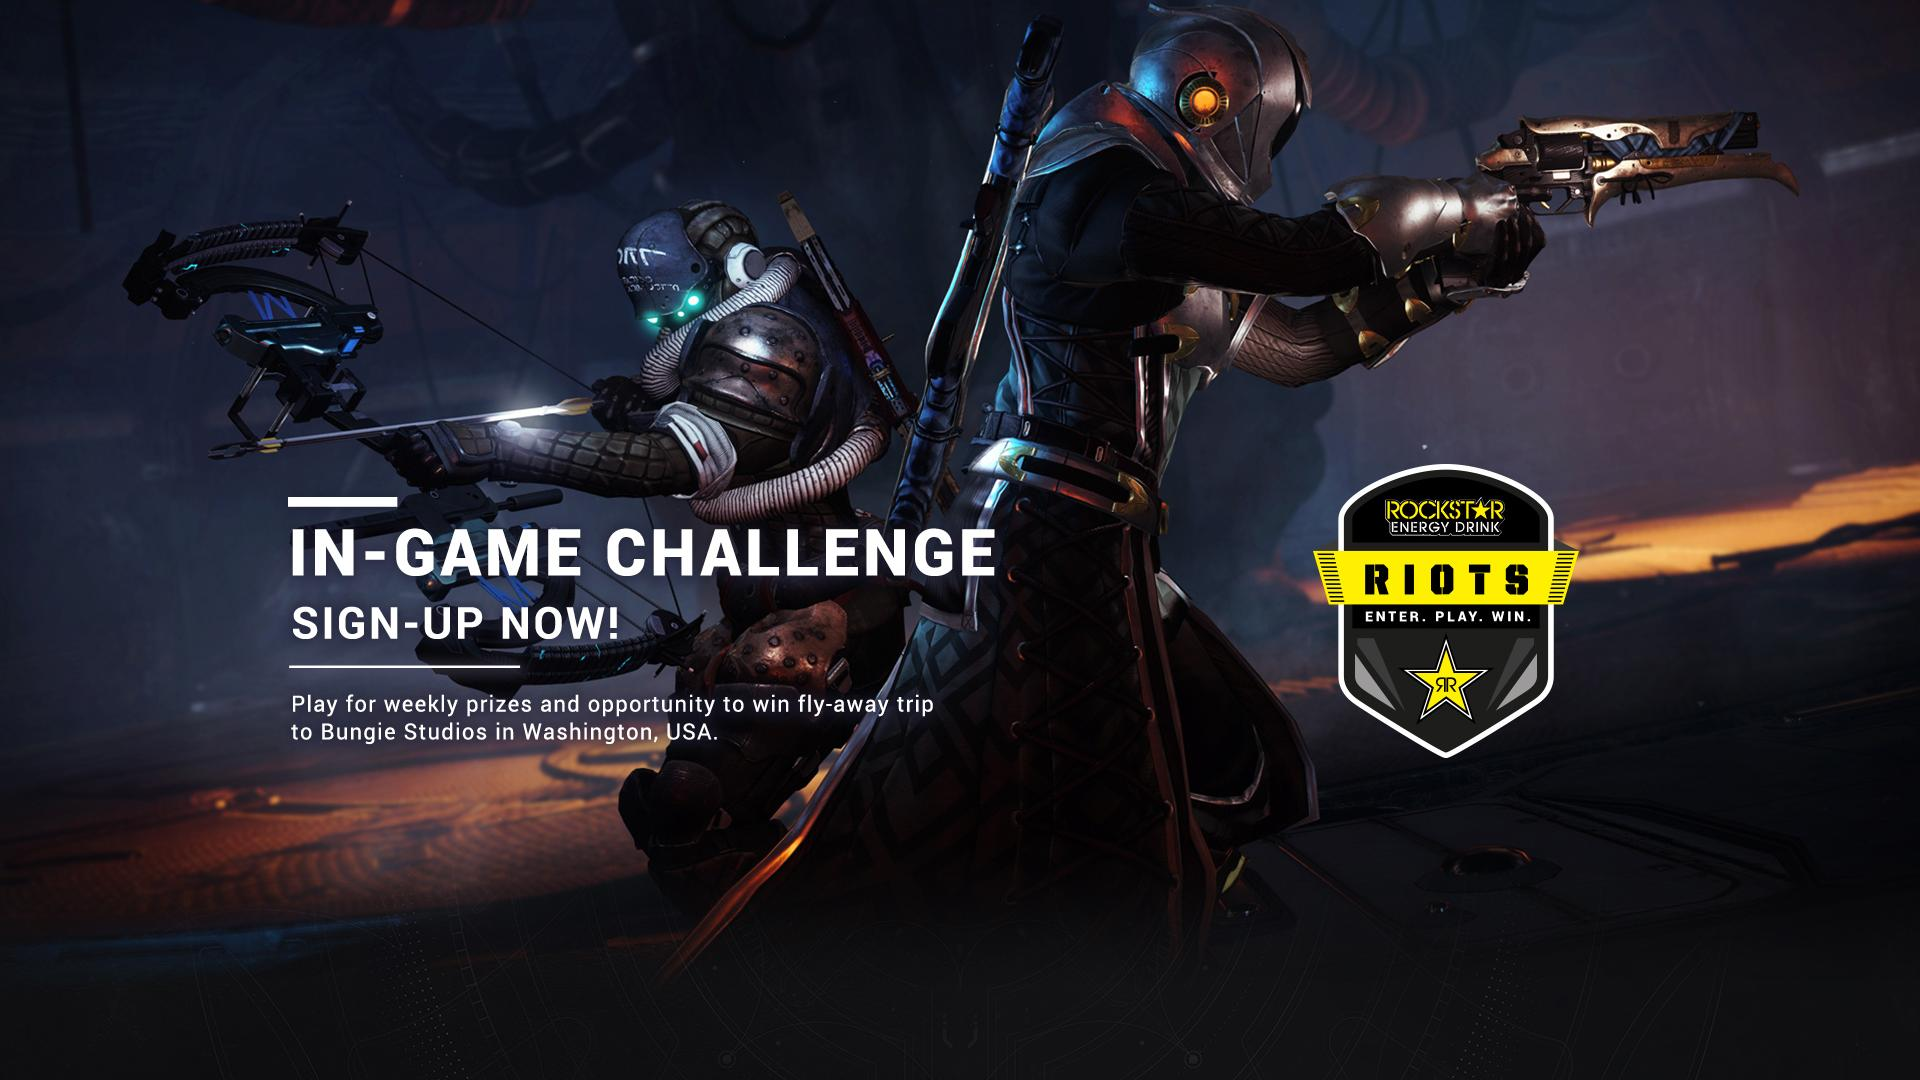 Sign Up Now: Destiny 2 In-Game Challenge